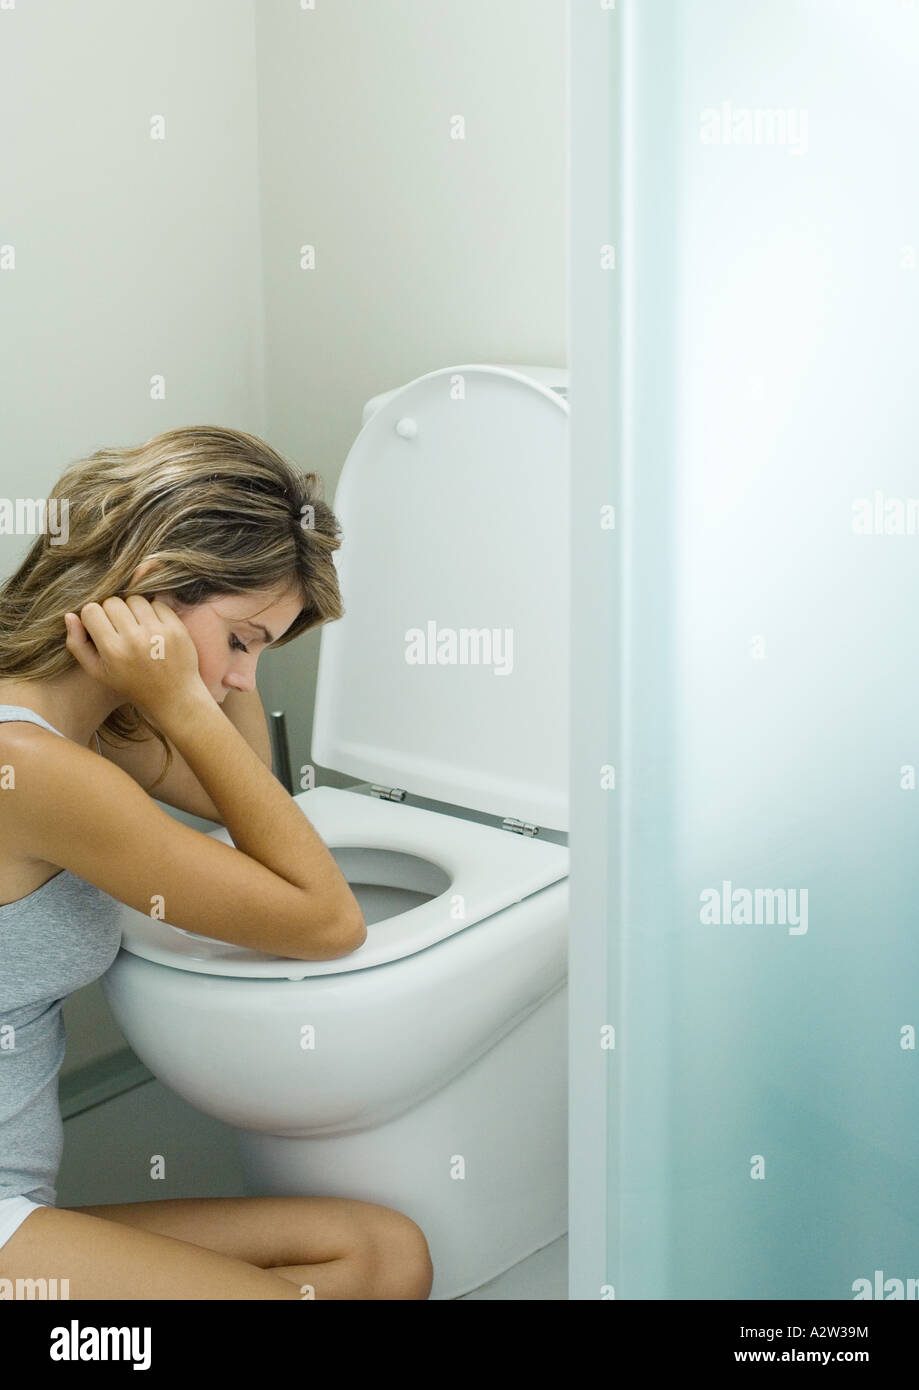 Young Girl Sitting On Toilet Stock Photos & Young Girl Sitting On ...